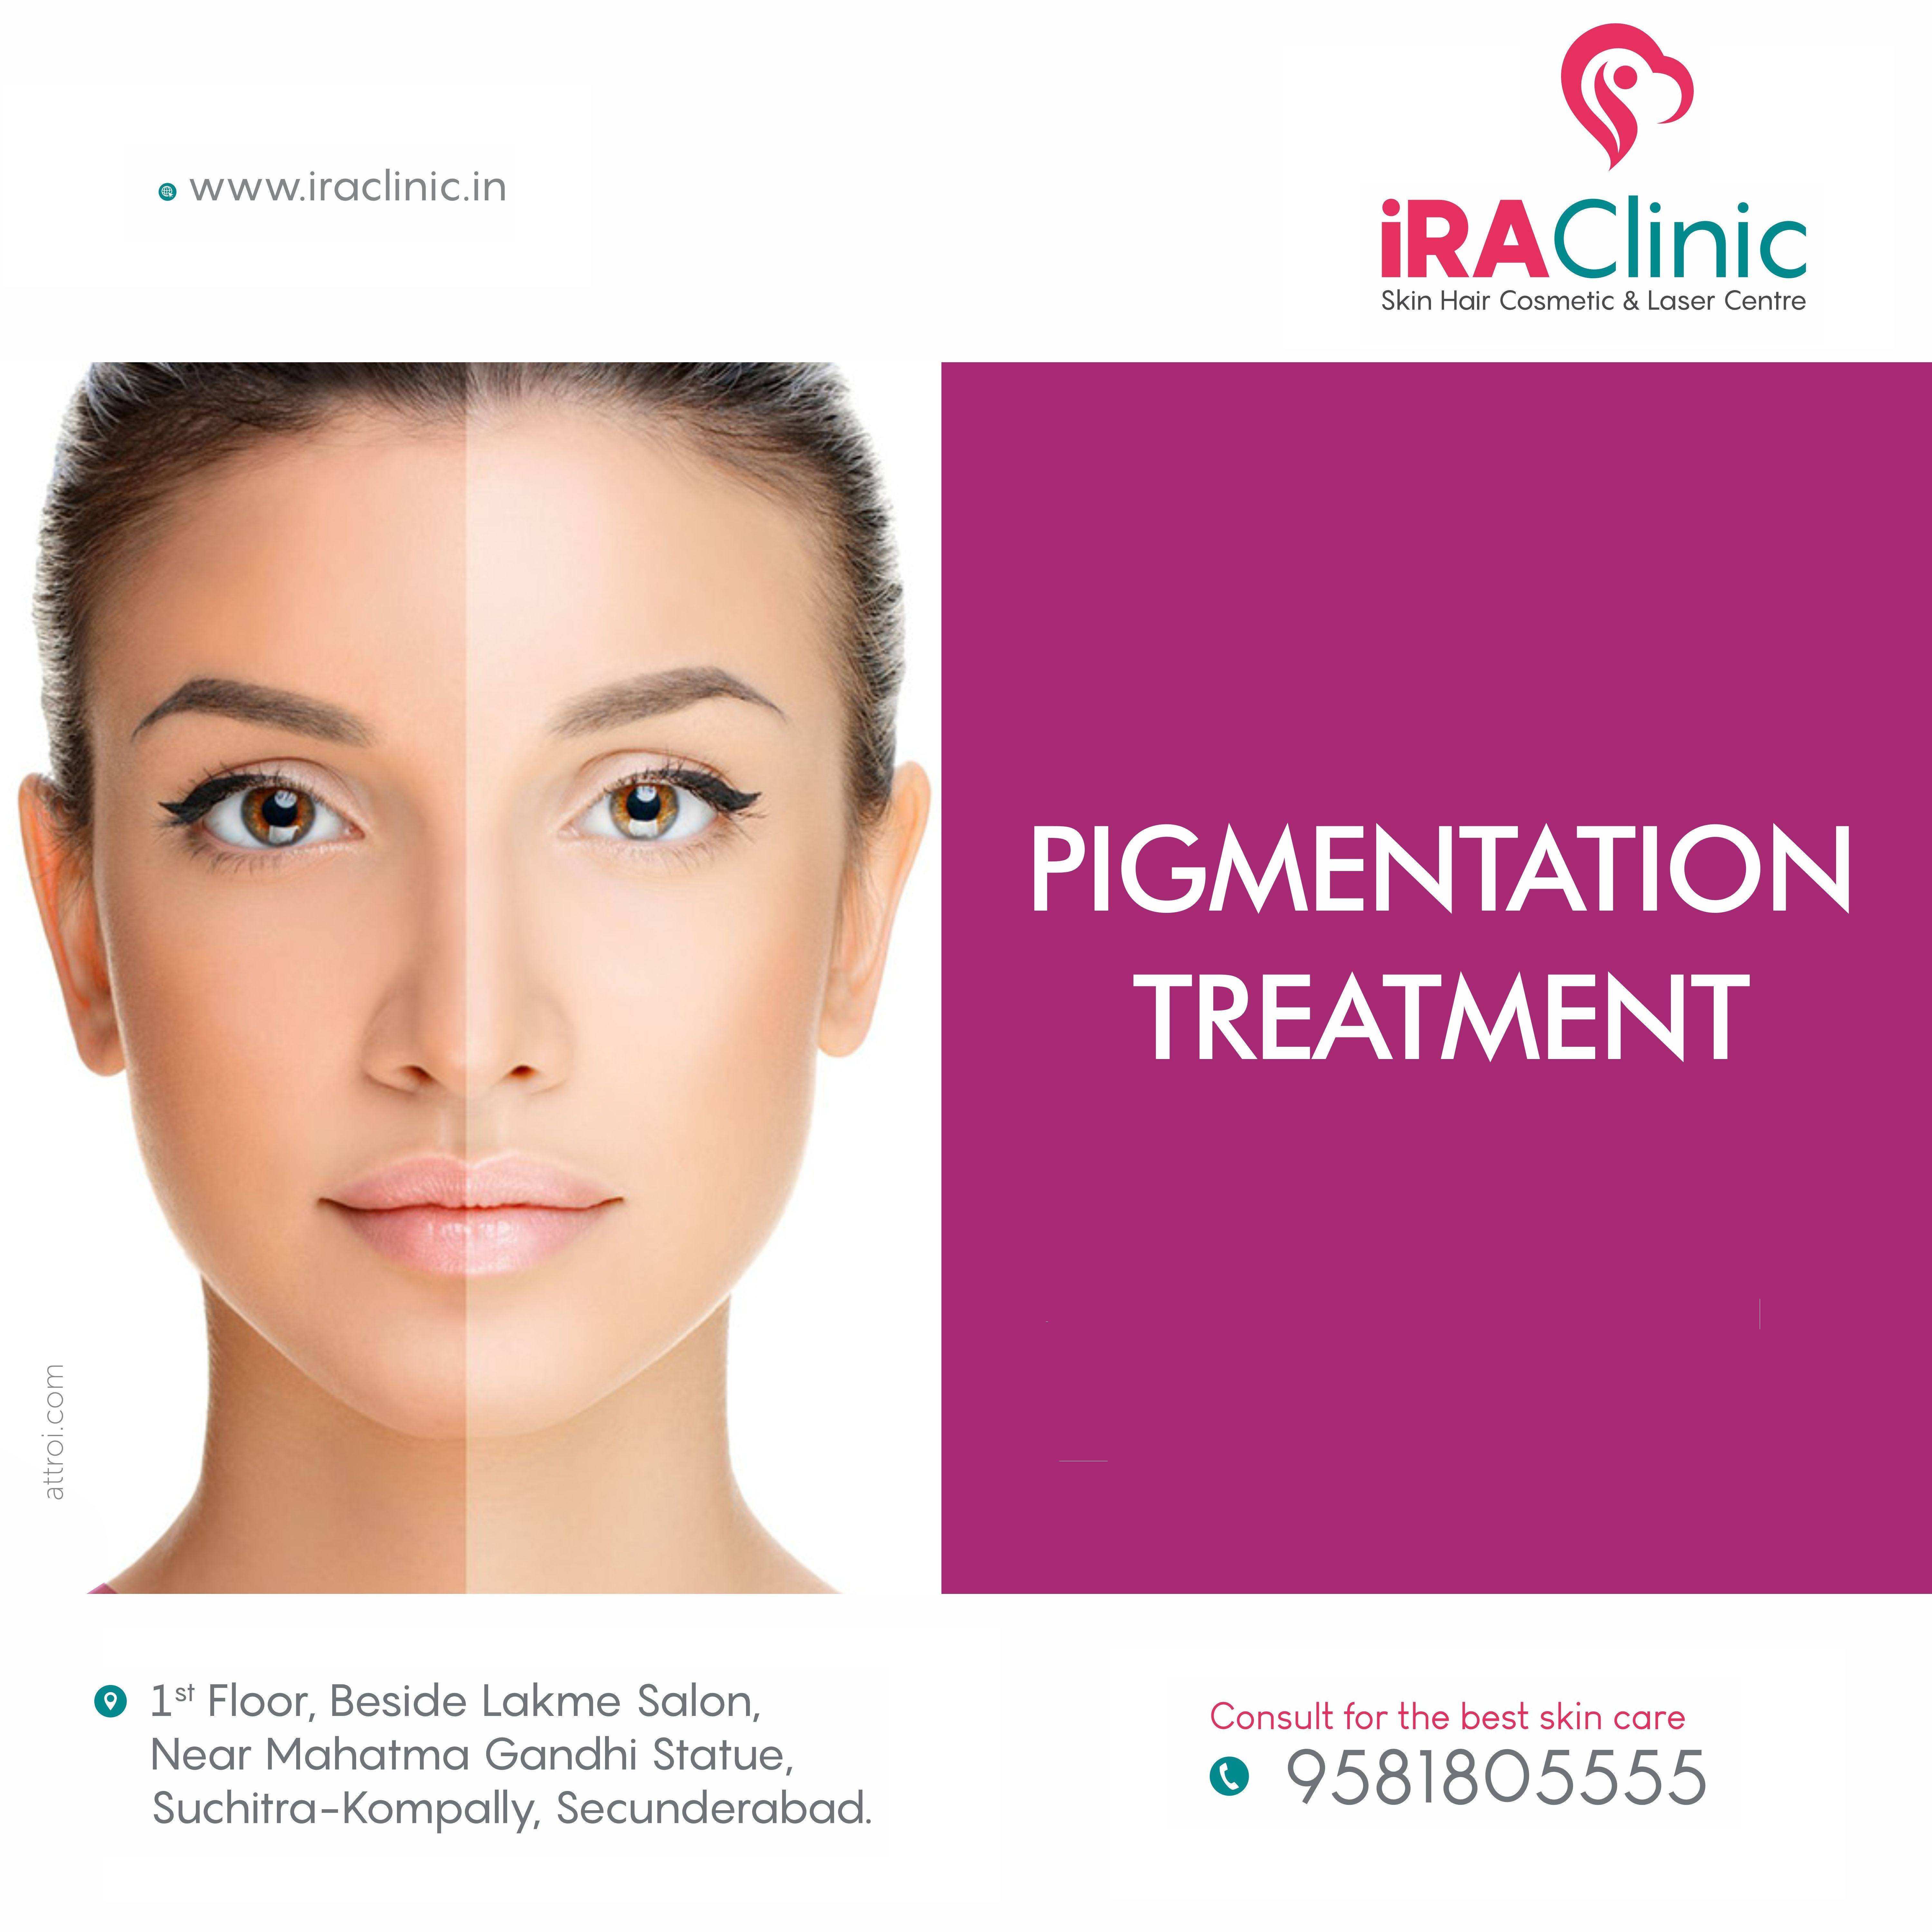 Pin By Ira Skin Hair Cosmetic Laser On Skin Treatments Pigmentation Treatment Cosmetics Laser Skin Treatments